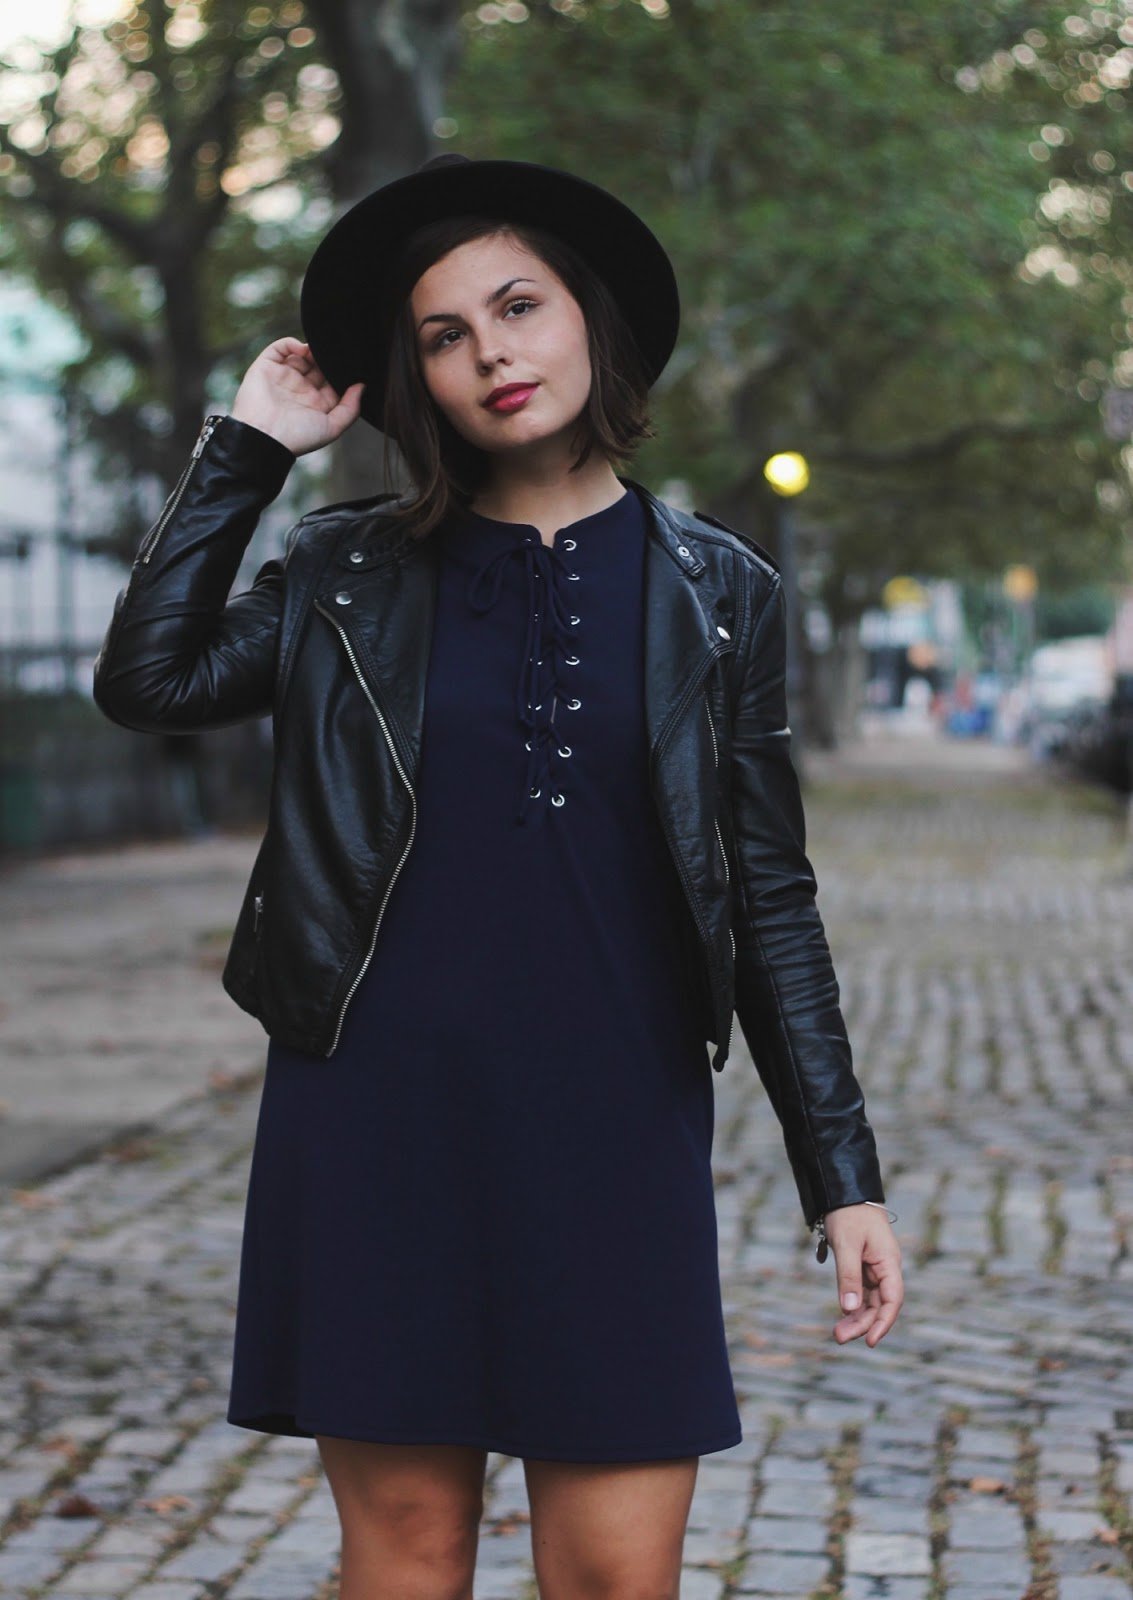 Dress with Grommets | Someone Like You